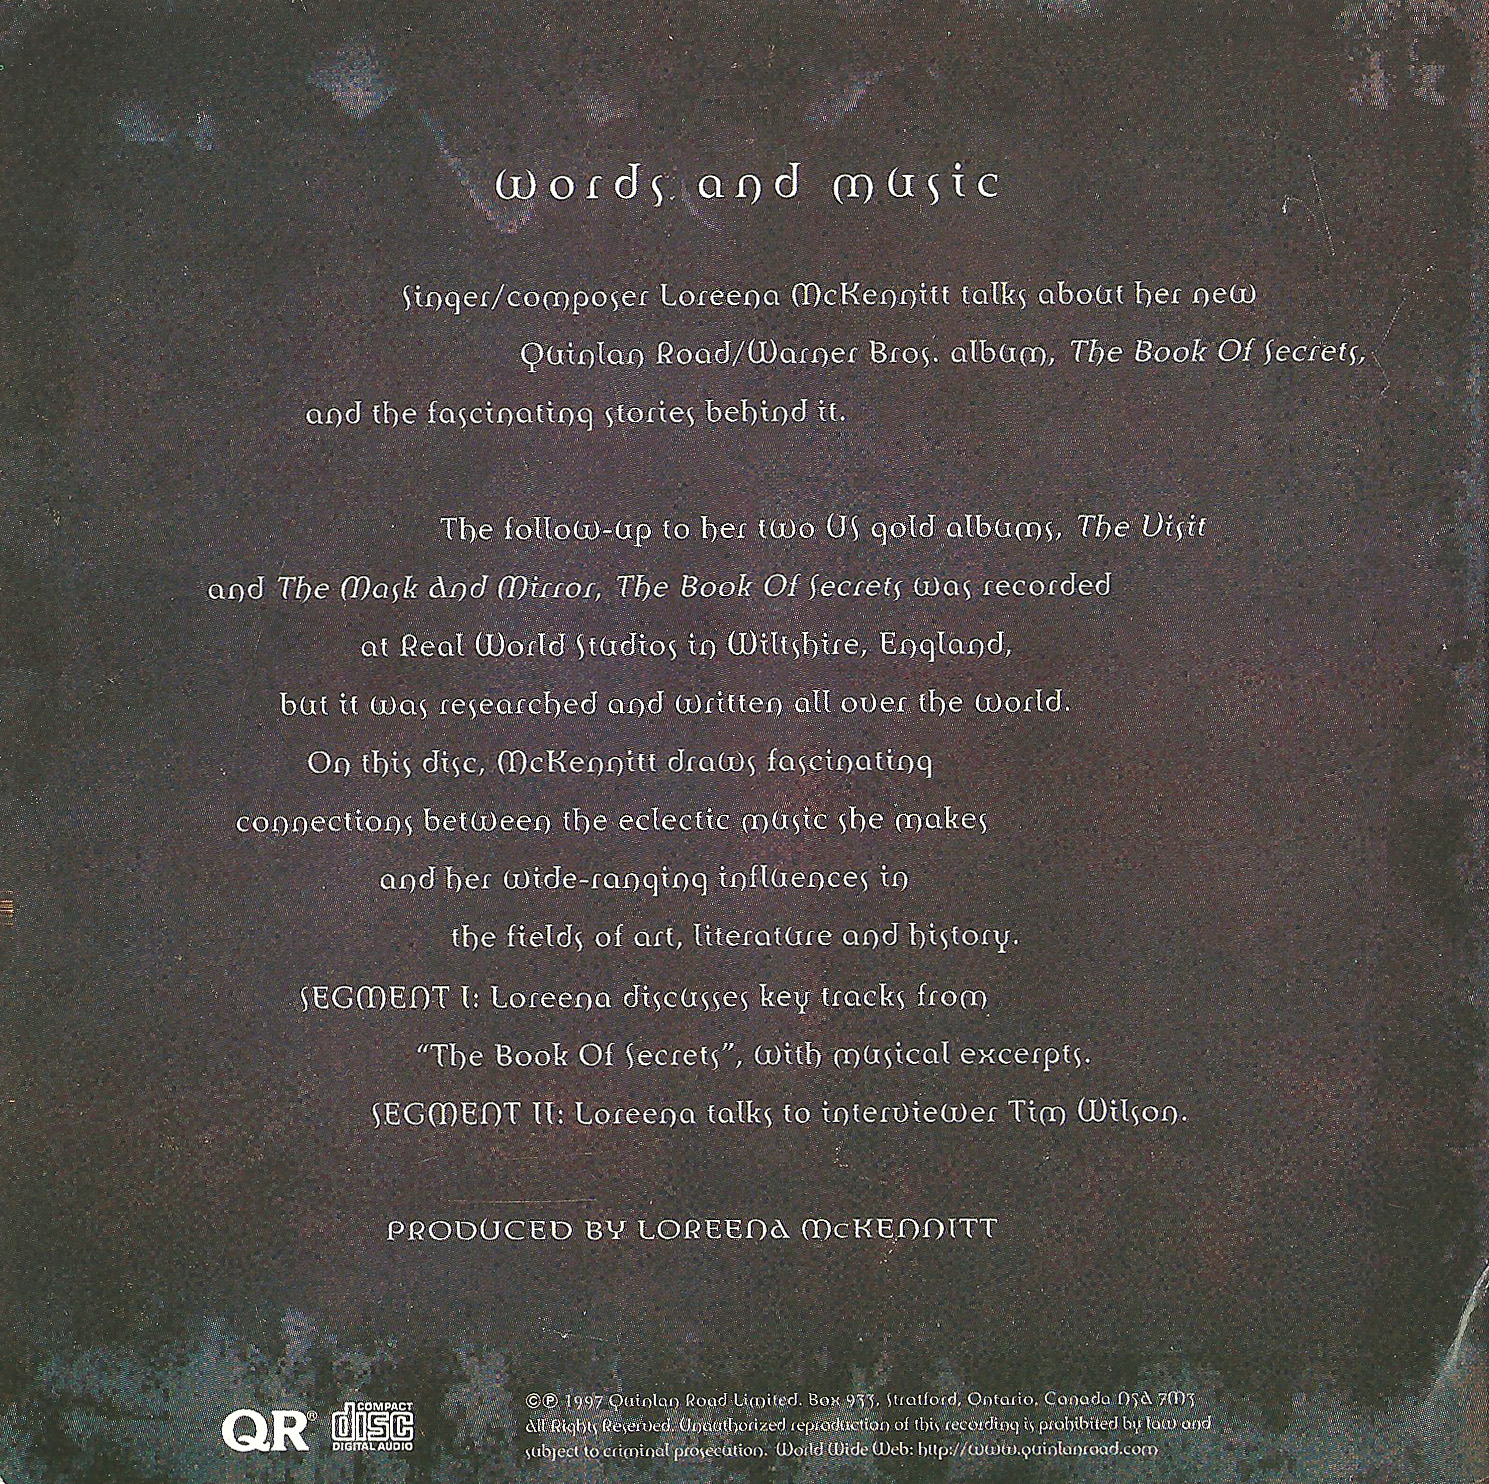 loreena mckennitt collection 1997 words and music the book of